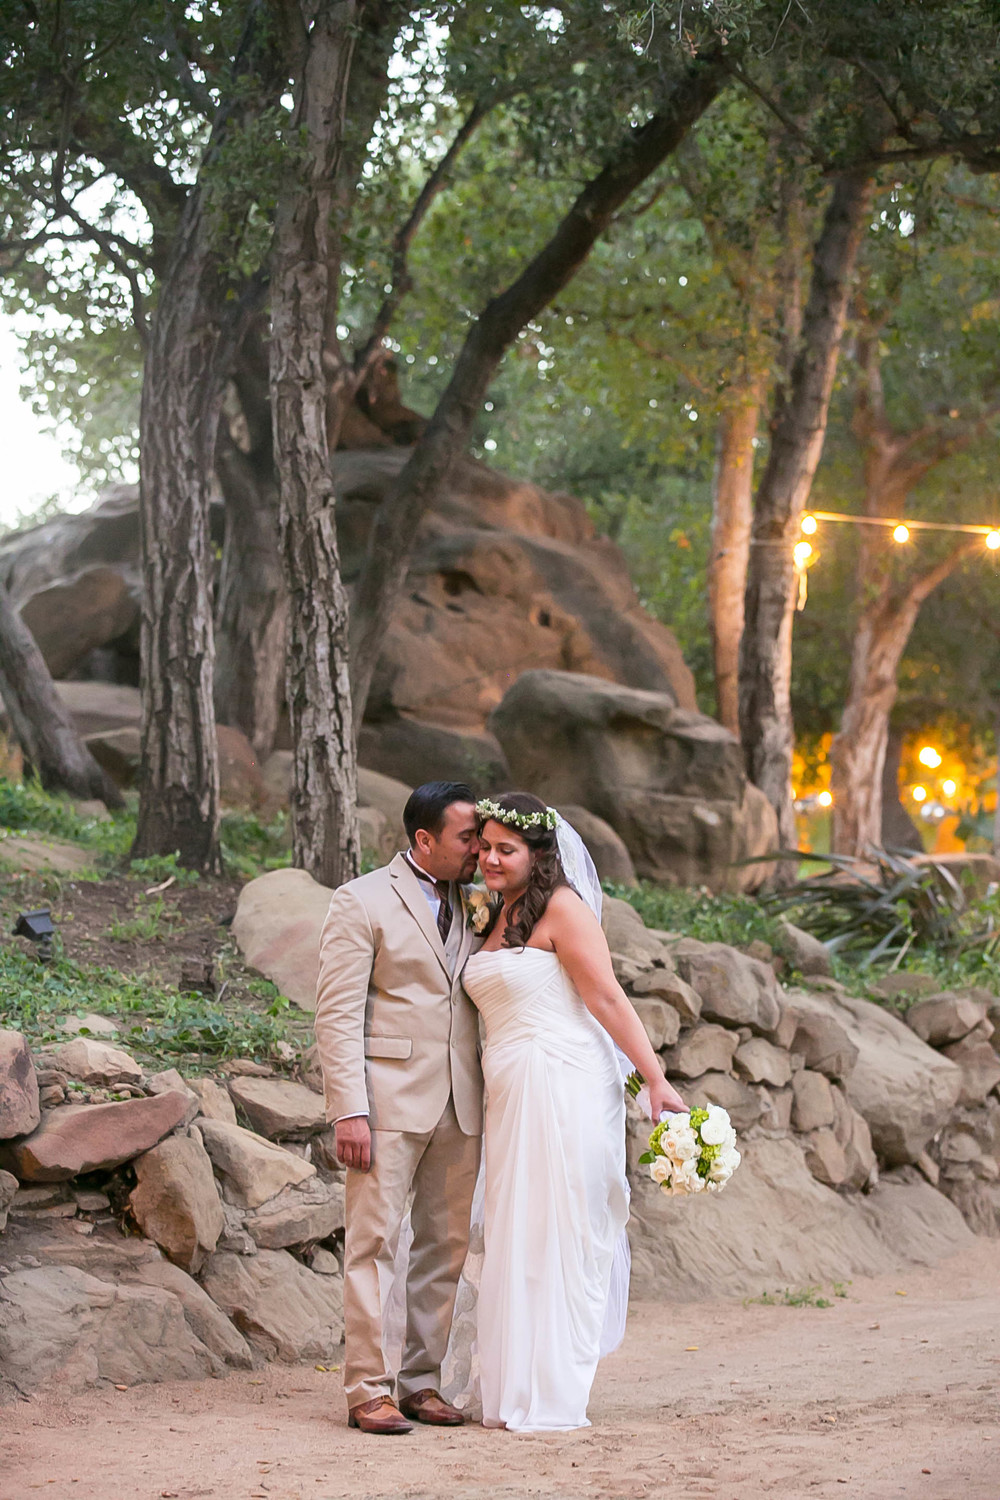 private los angeles wedding venue, rancho providencia, spanish wedding inspiration, love, bride, groom, los angeles wedding photography, chris holt photography